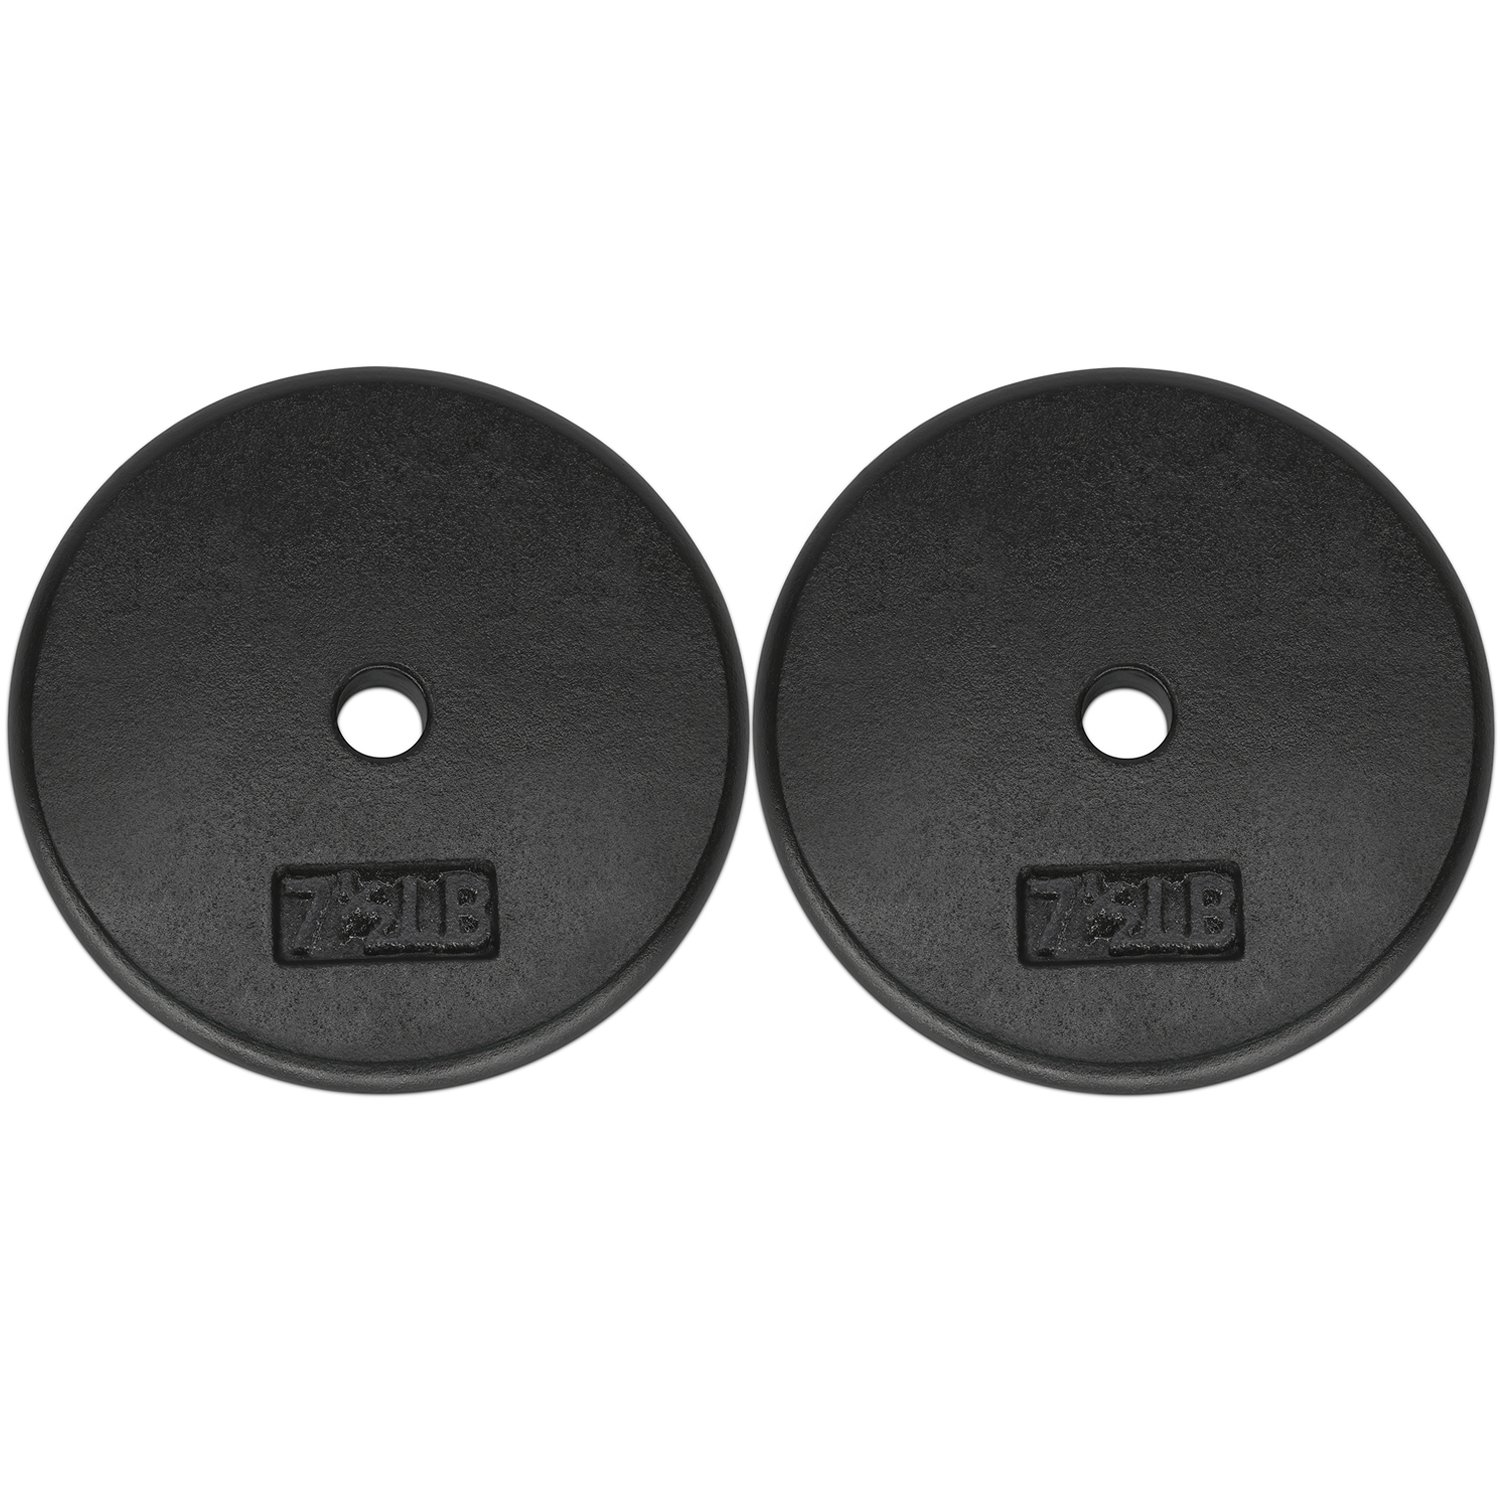 Yes4All 1-inch Cast Iron Weight Plates for Dumbbells – Standard Weight Disc Plates (7.5 lbs, Set of 2)